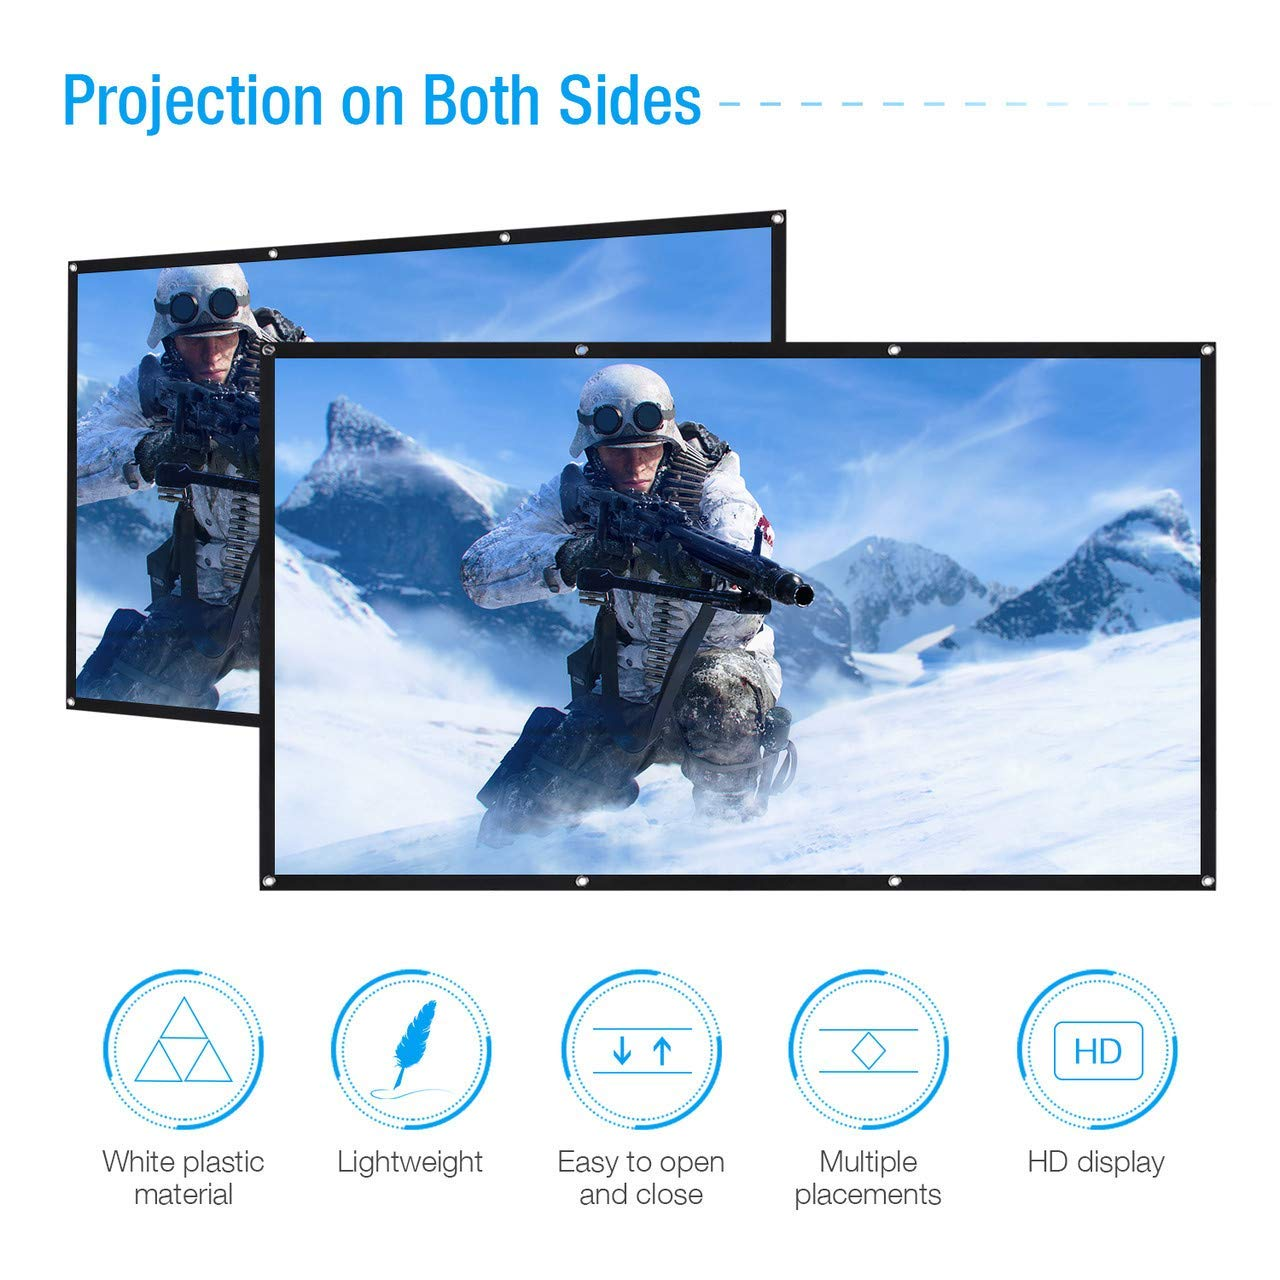 120 Inch Projection Screen, Powerextra 16:9 HD 4K Foldable Anti-Crease Portable Projector Screen for Home Theater Indoor Outdoor Movie Screen, Support Double-Sided Projection